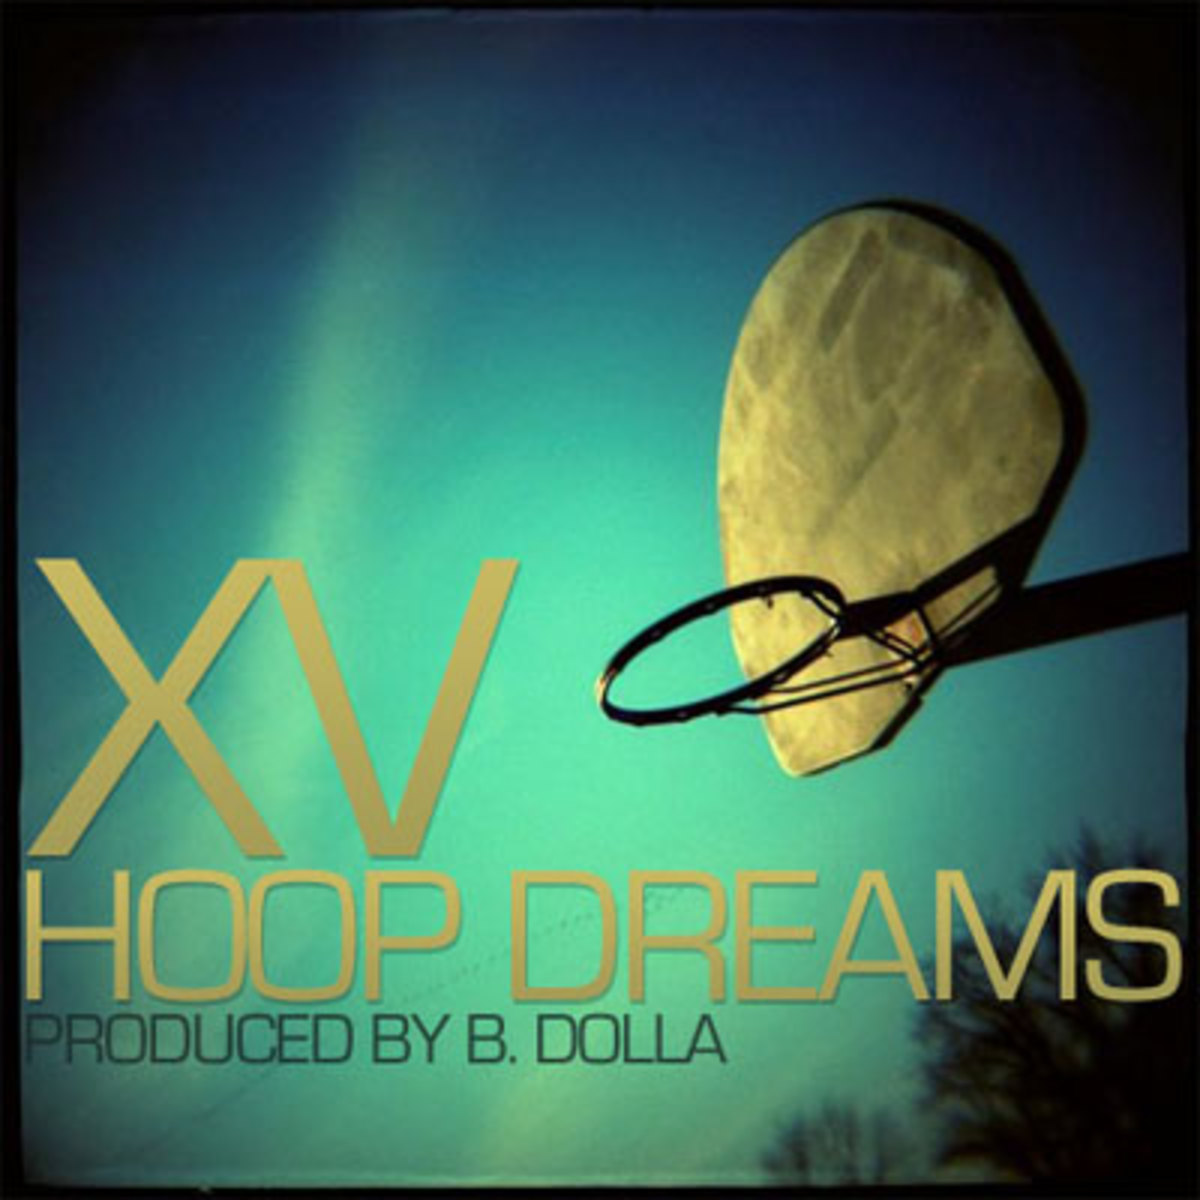 xv-hoopdreams.jpg